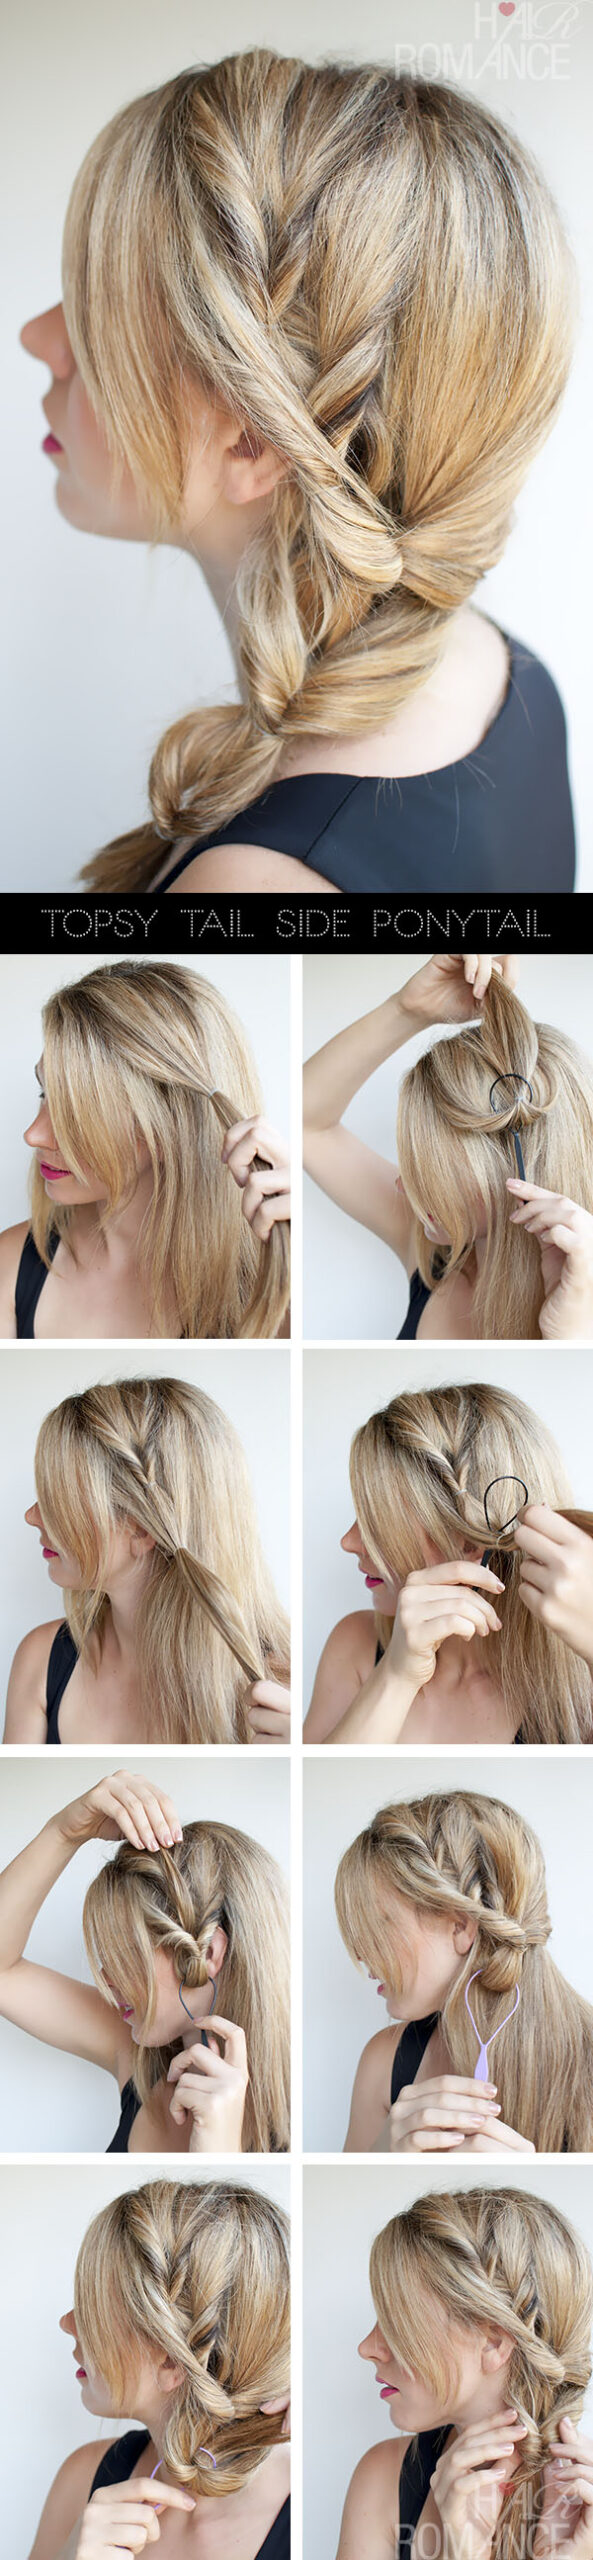 Topsy-Tail-Ponytail-tutorial-the-no-braid-side-braid-scaled